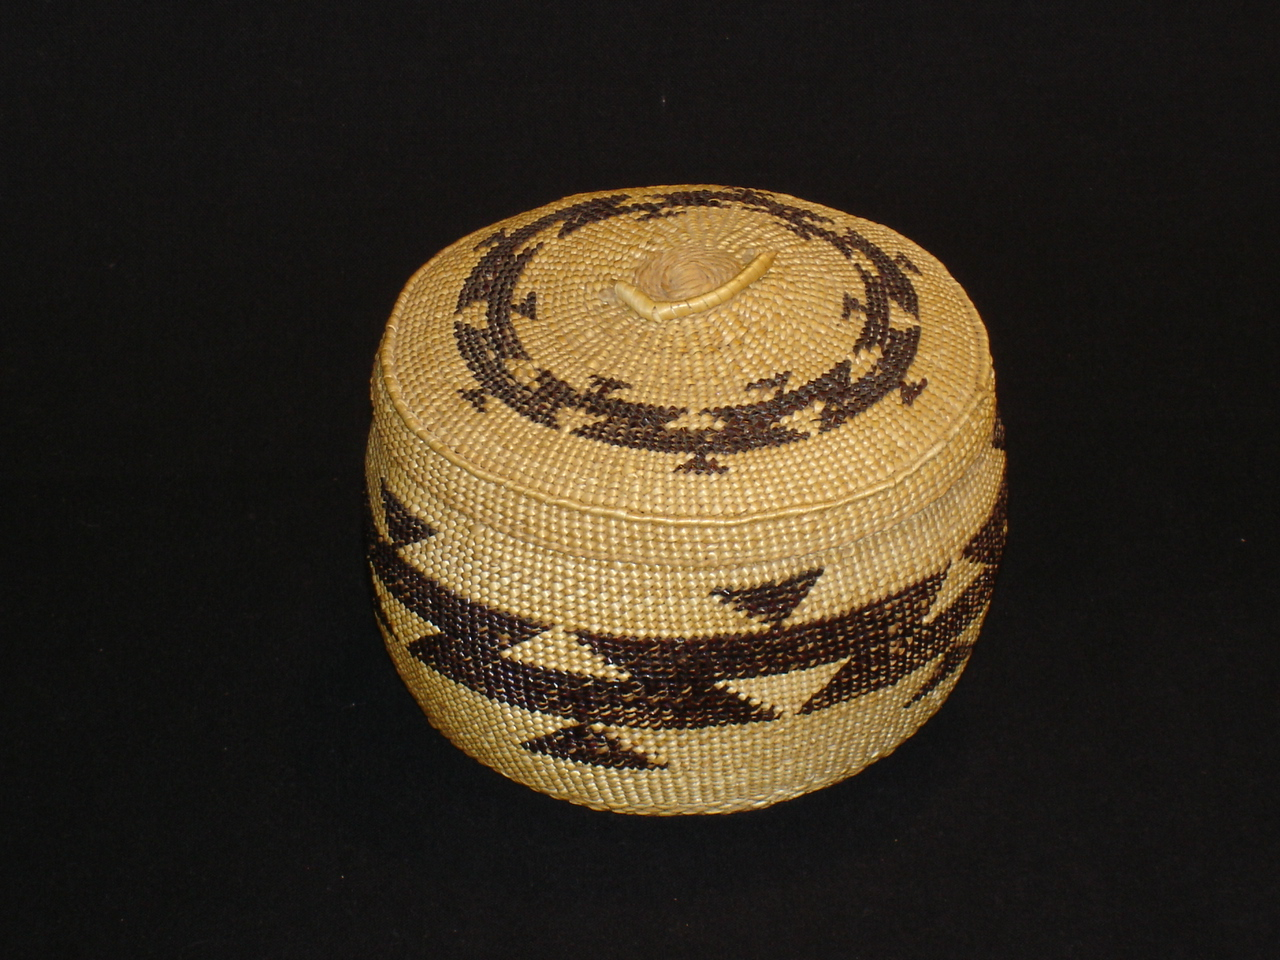 669c3e1d8fc Hupa Karok Native American Indian Baskets